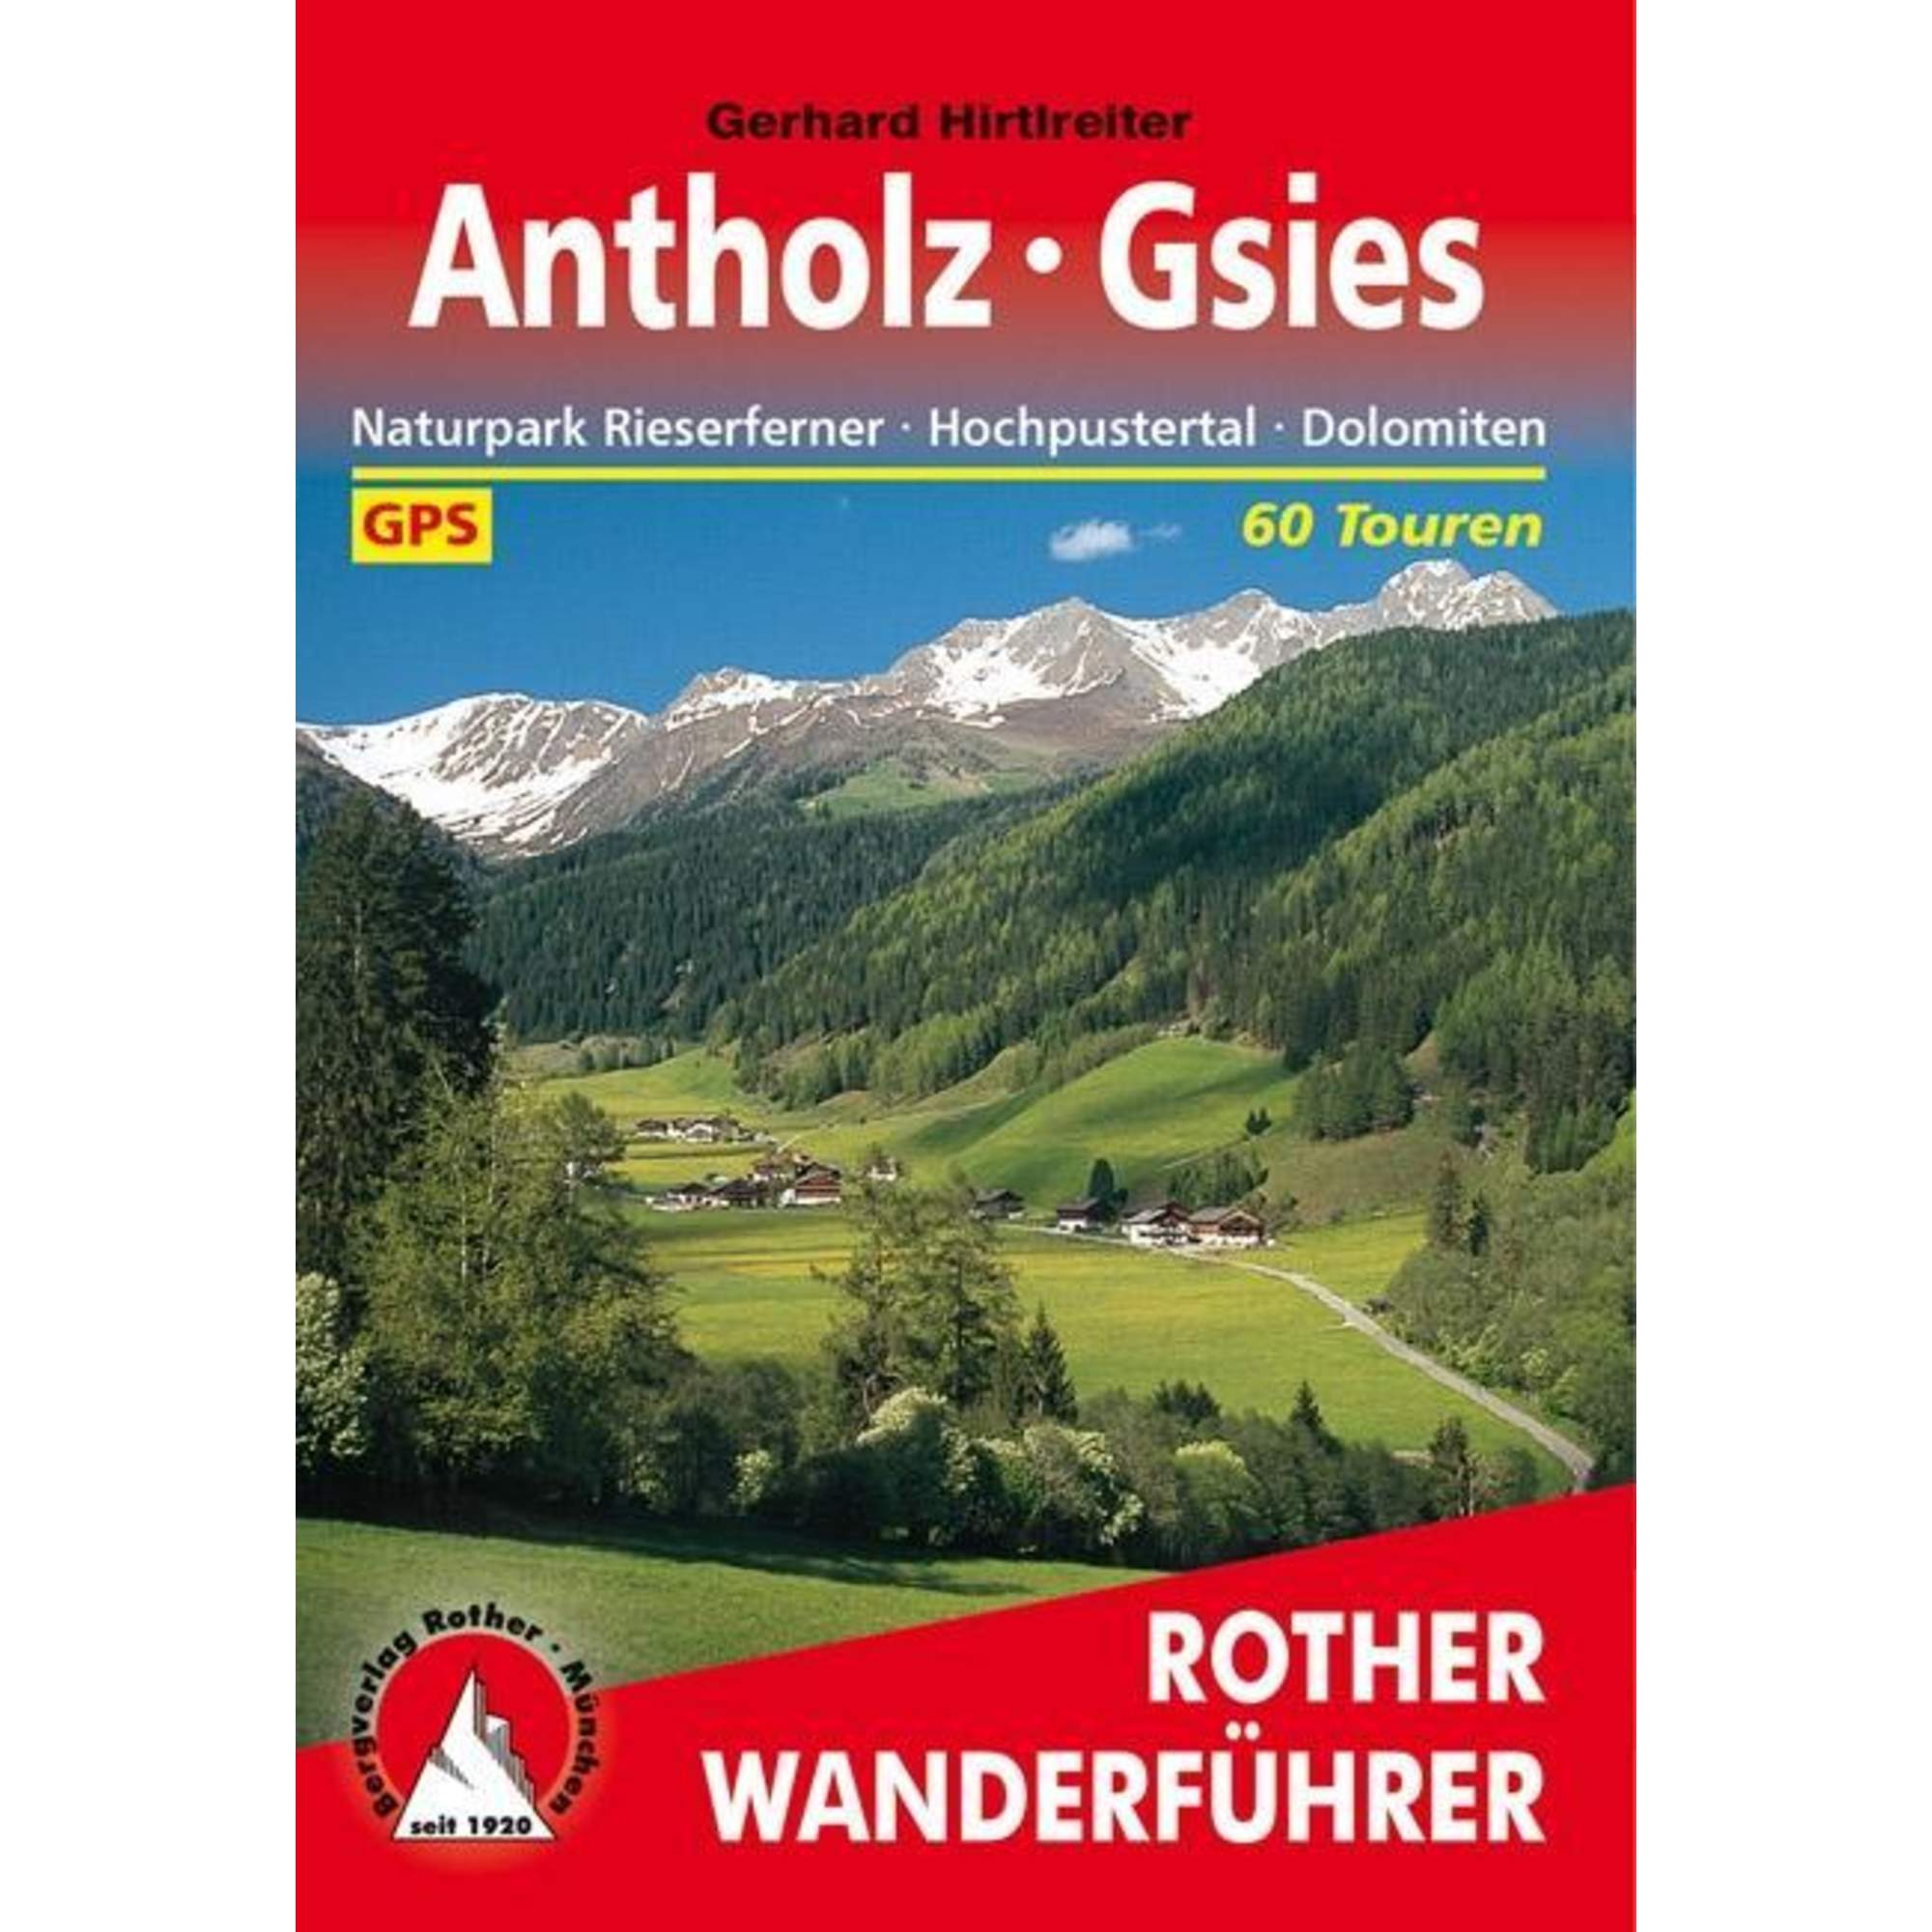 Antholz - Gsies, 14,90 Euro